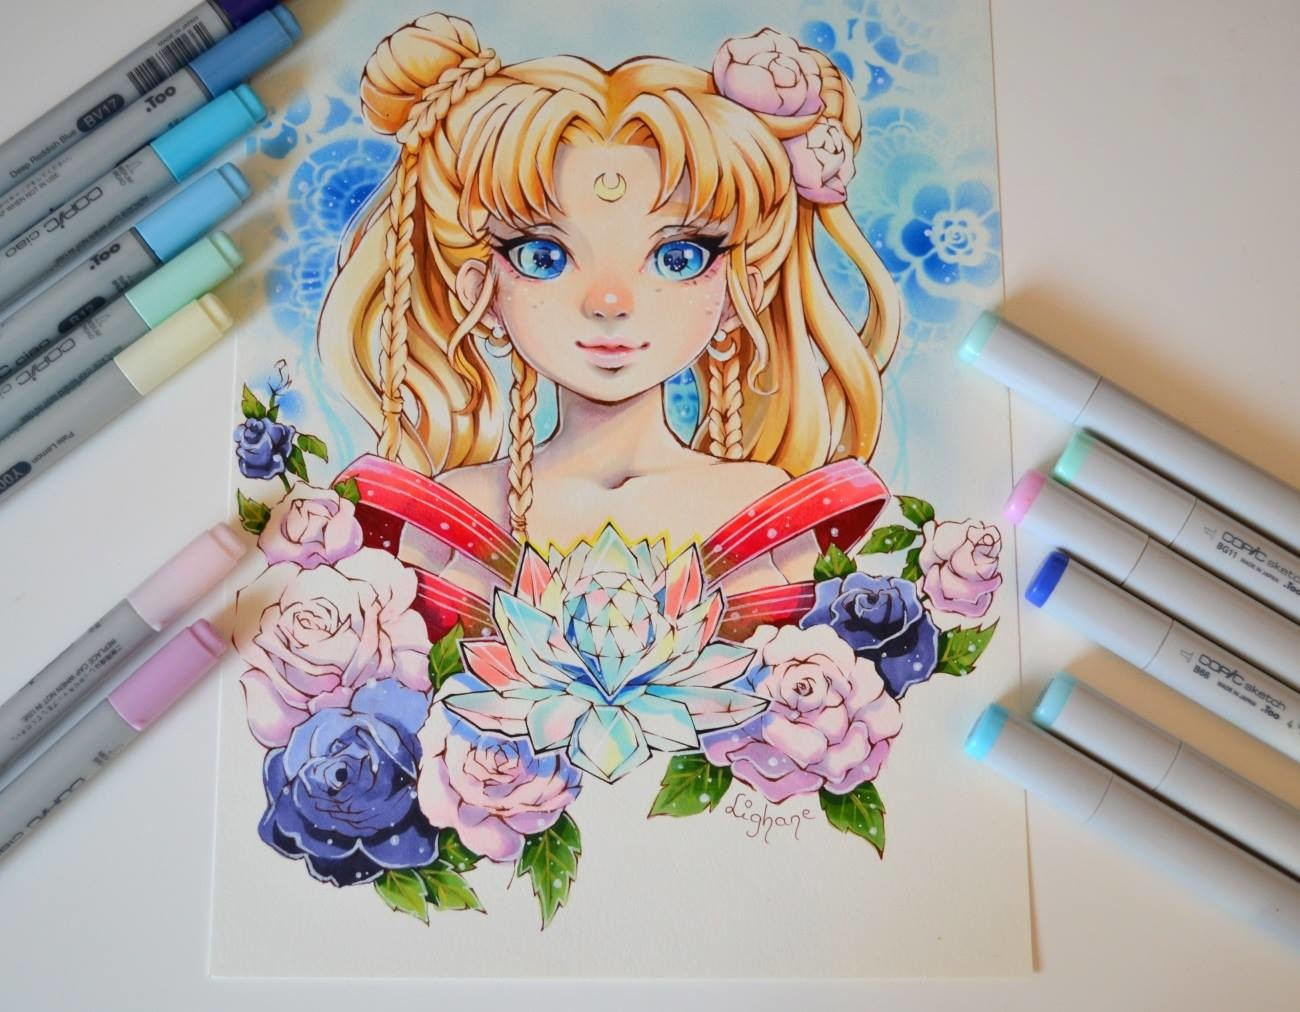 ArtStation - Floral Sailor Moon / Coloring Book / Copic ...